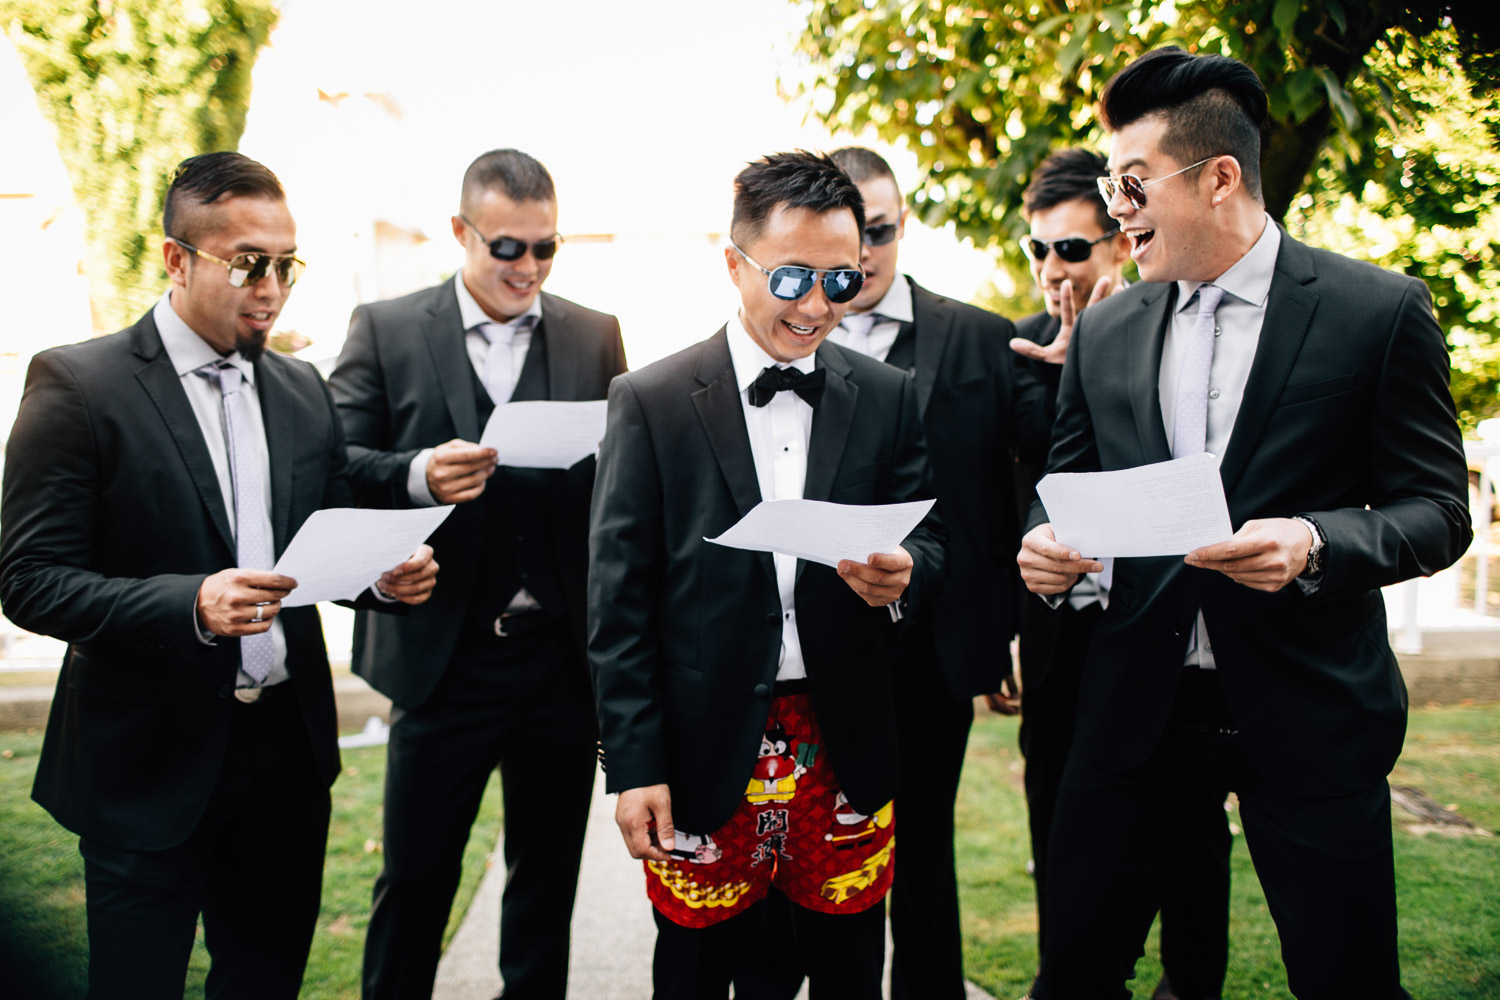 chinese door games vancouver wedding photography groom and groomsmen singing